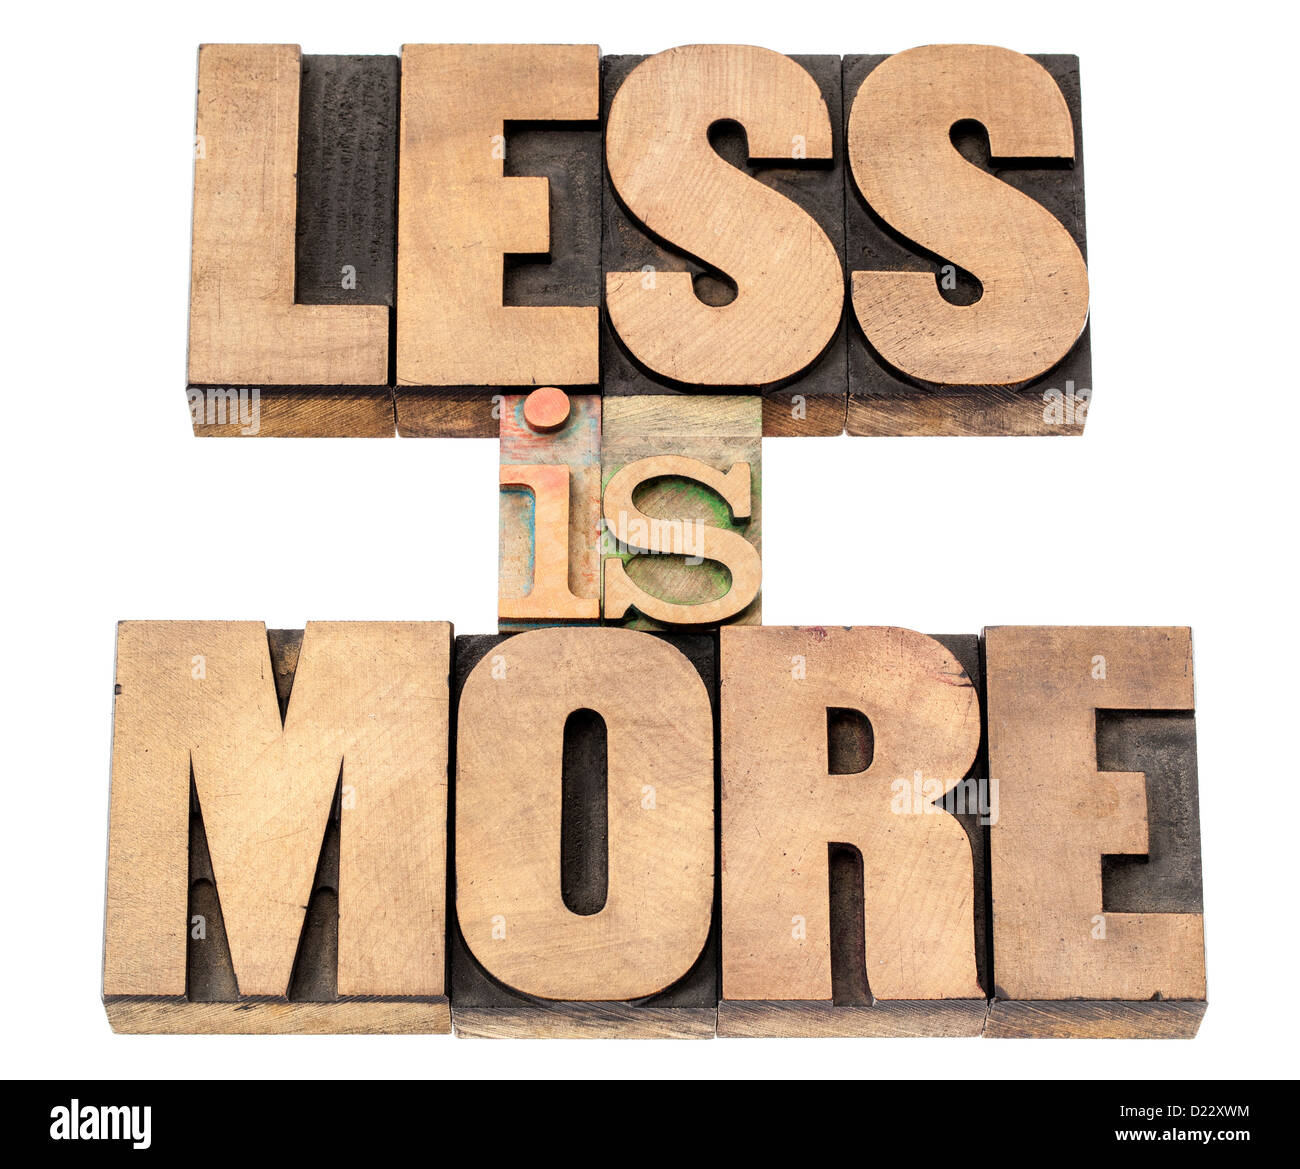 less is more - efficiency concept - isolated text in vintage letterpress wood type printing blocks - Stock Image